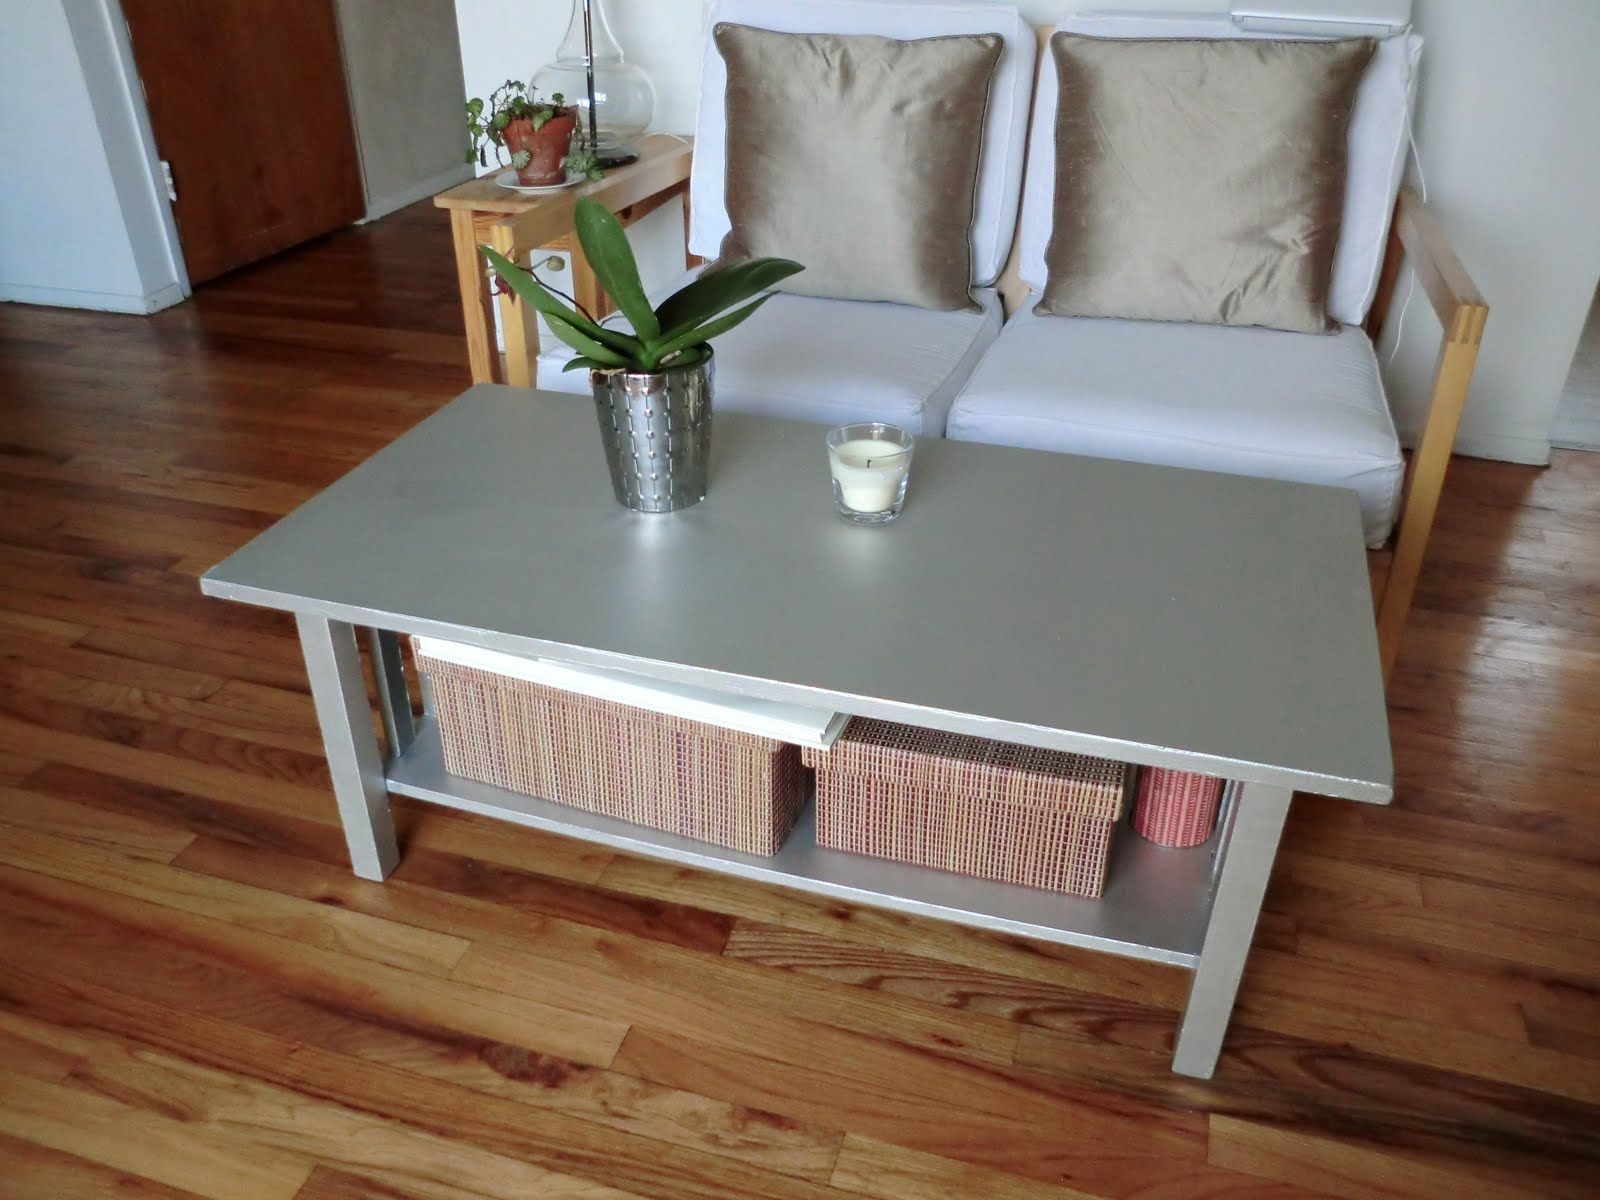 Diy coffe table diy coffee table upgrade furniture pinterest diy coffe table diy coffee table upgrade geotapseo Gallery